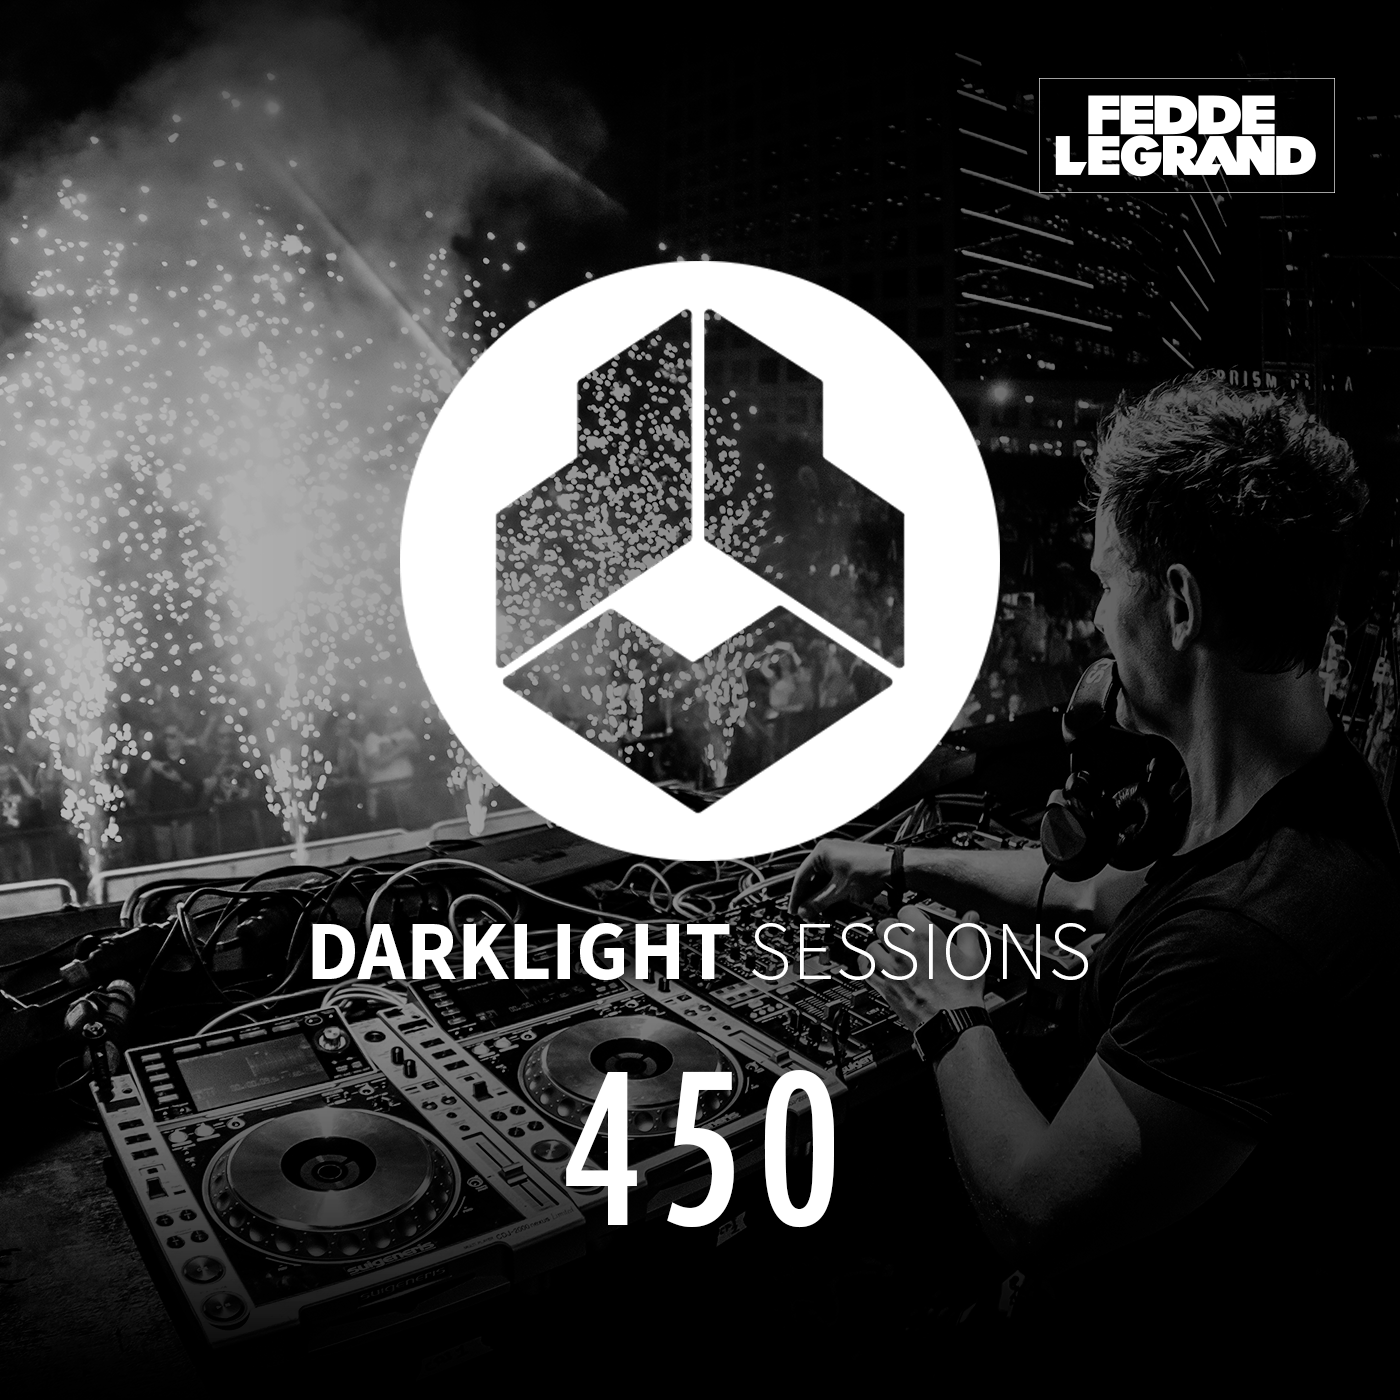 Darklight Sessions 450